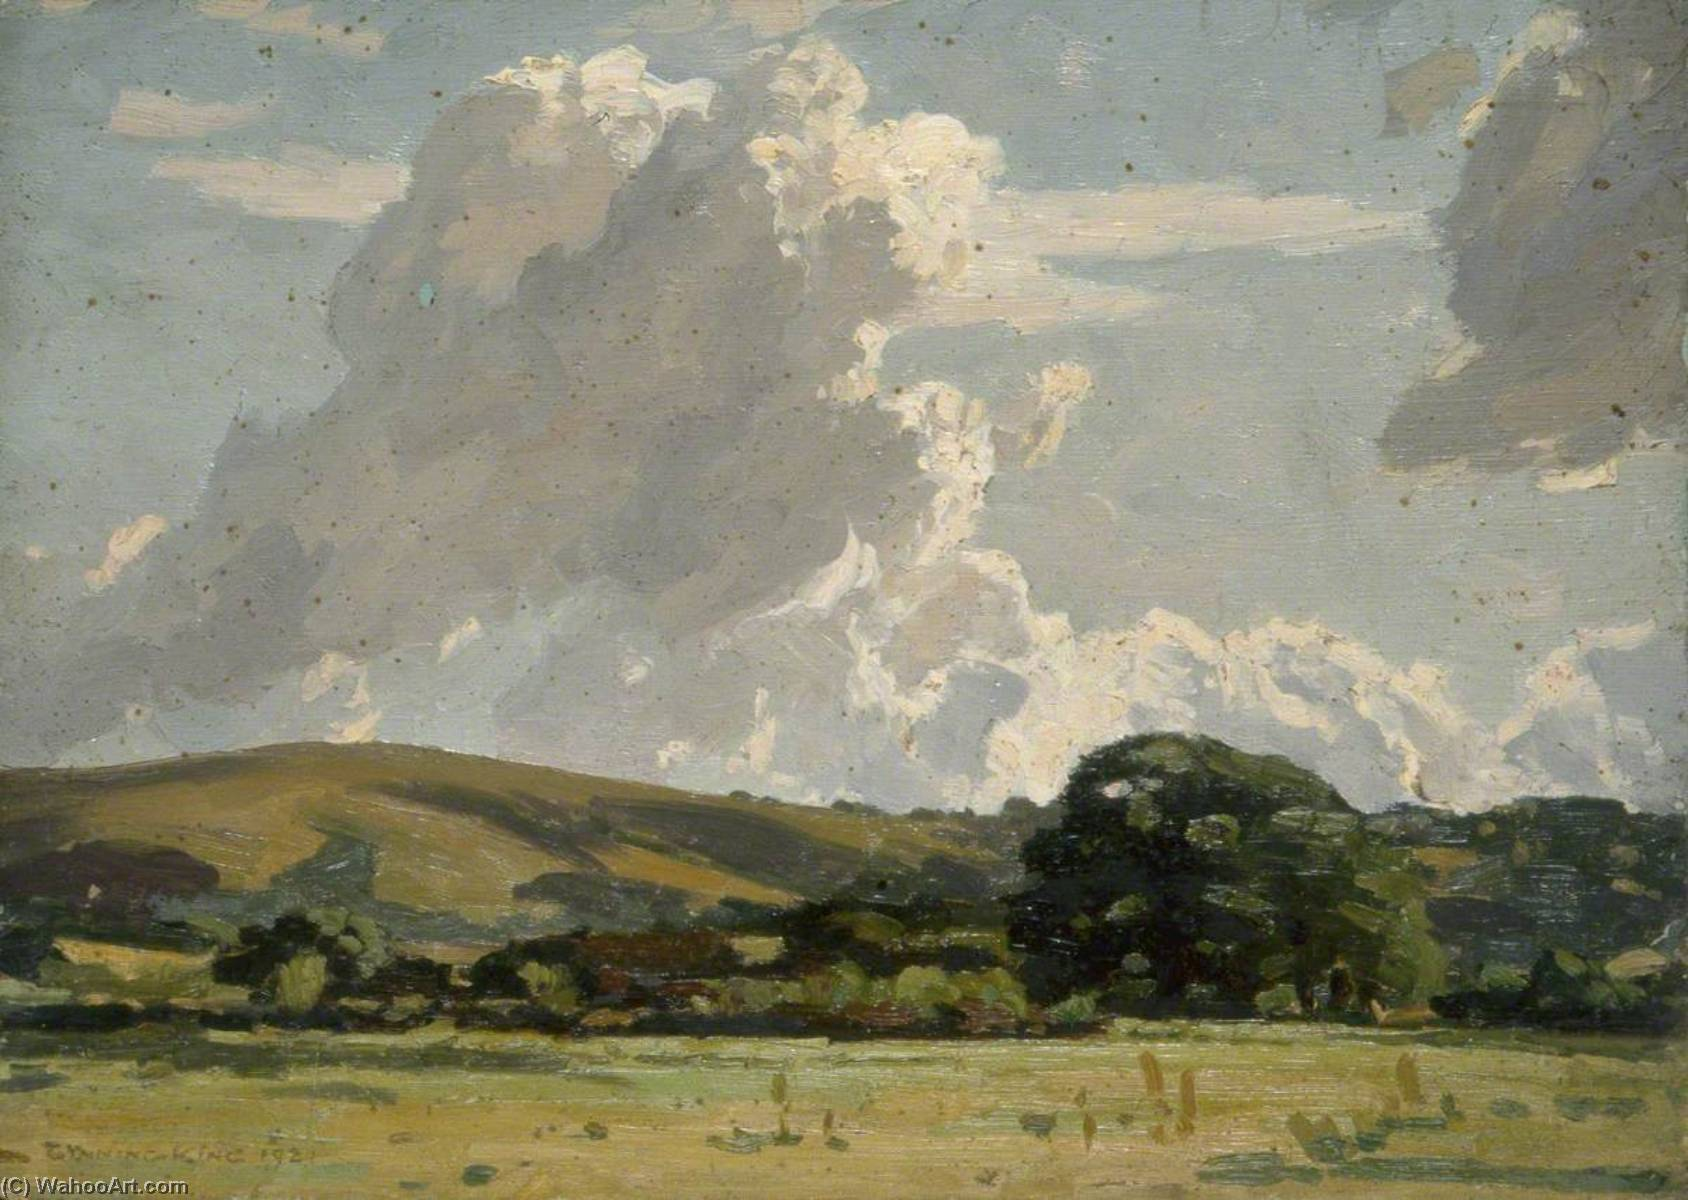 Landscape and Cloud Study, 1921 by Gunning King | WahooArt.com